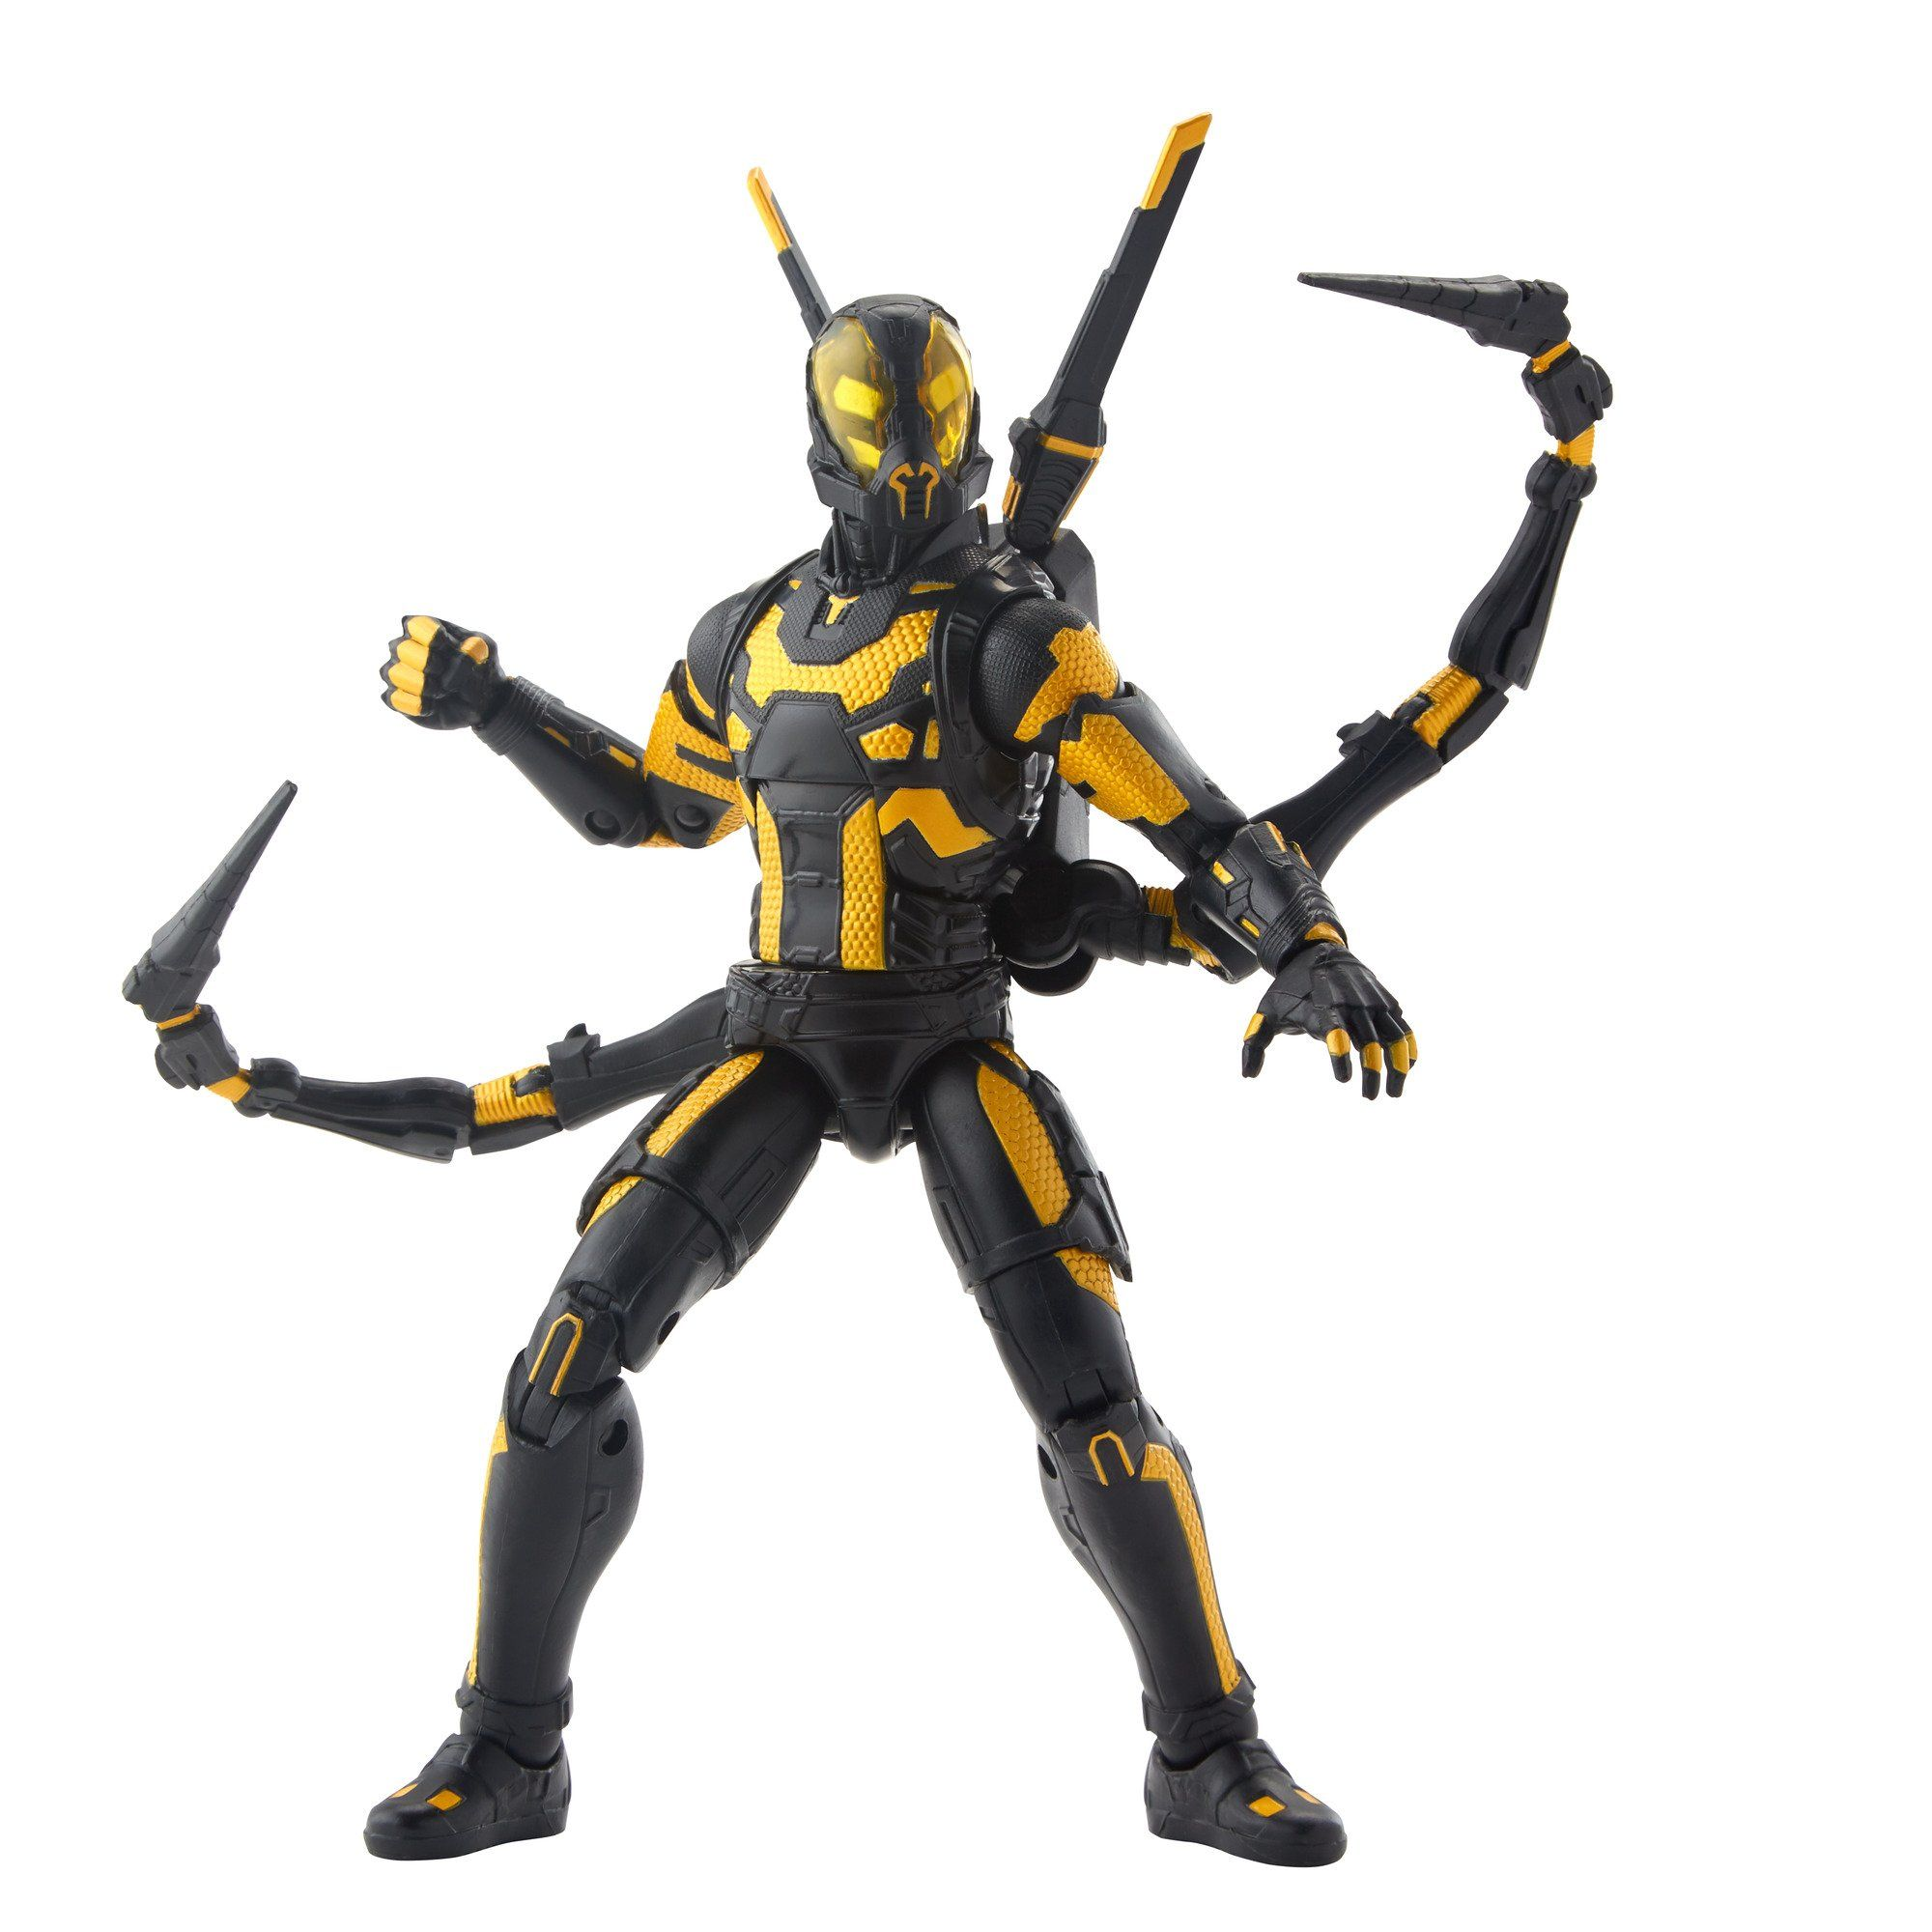 Marvel Studios The First Ten Years Ant Man Ant Man And Yellowjacket Figures Marvel Studios Marvel Legends Figures Marvel Series